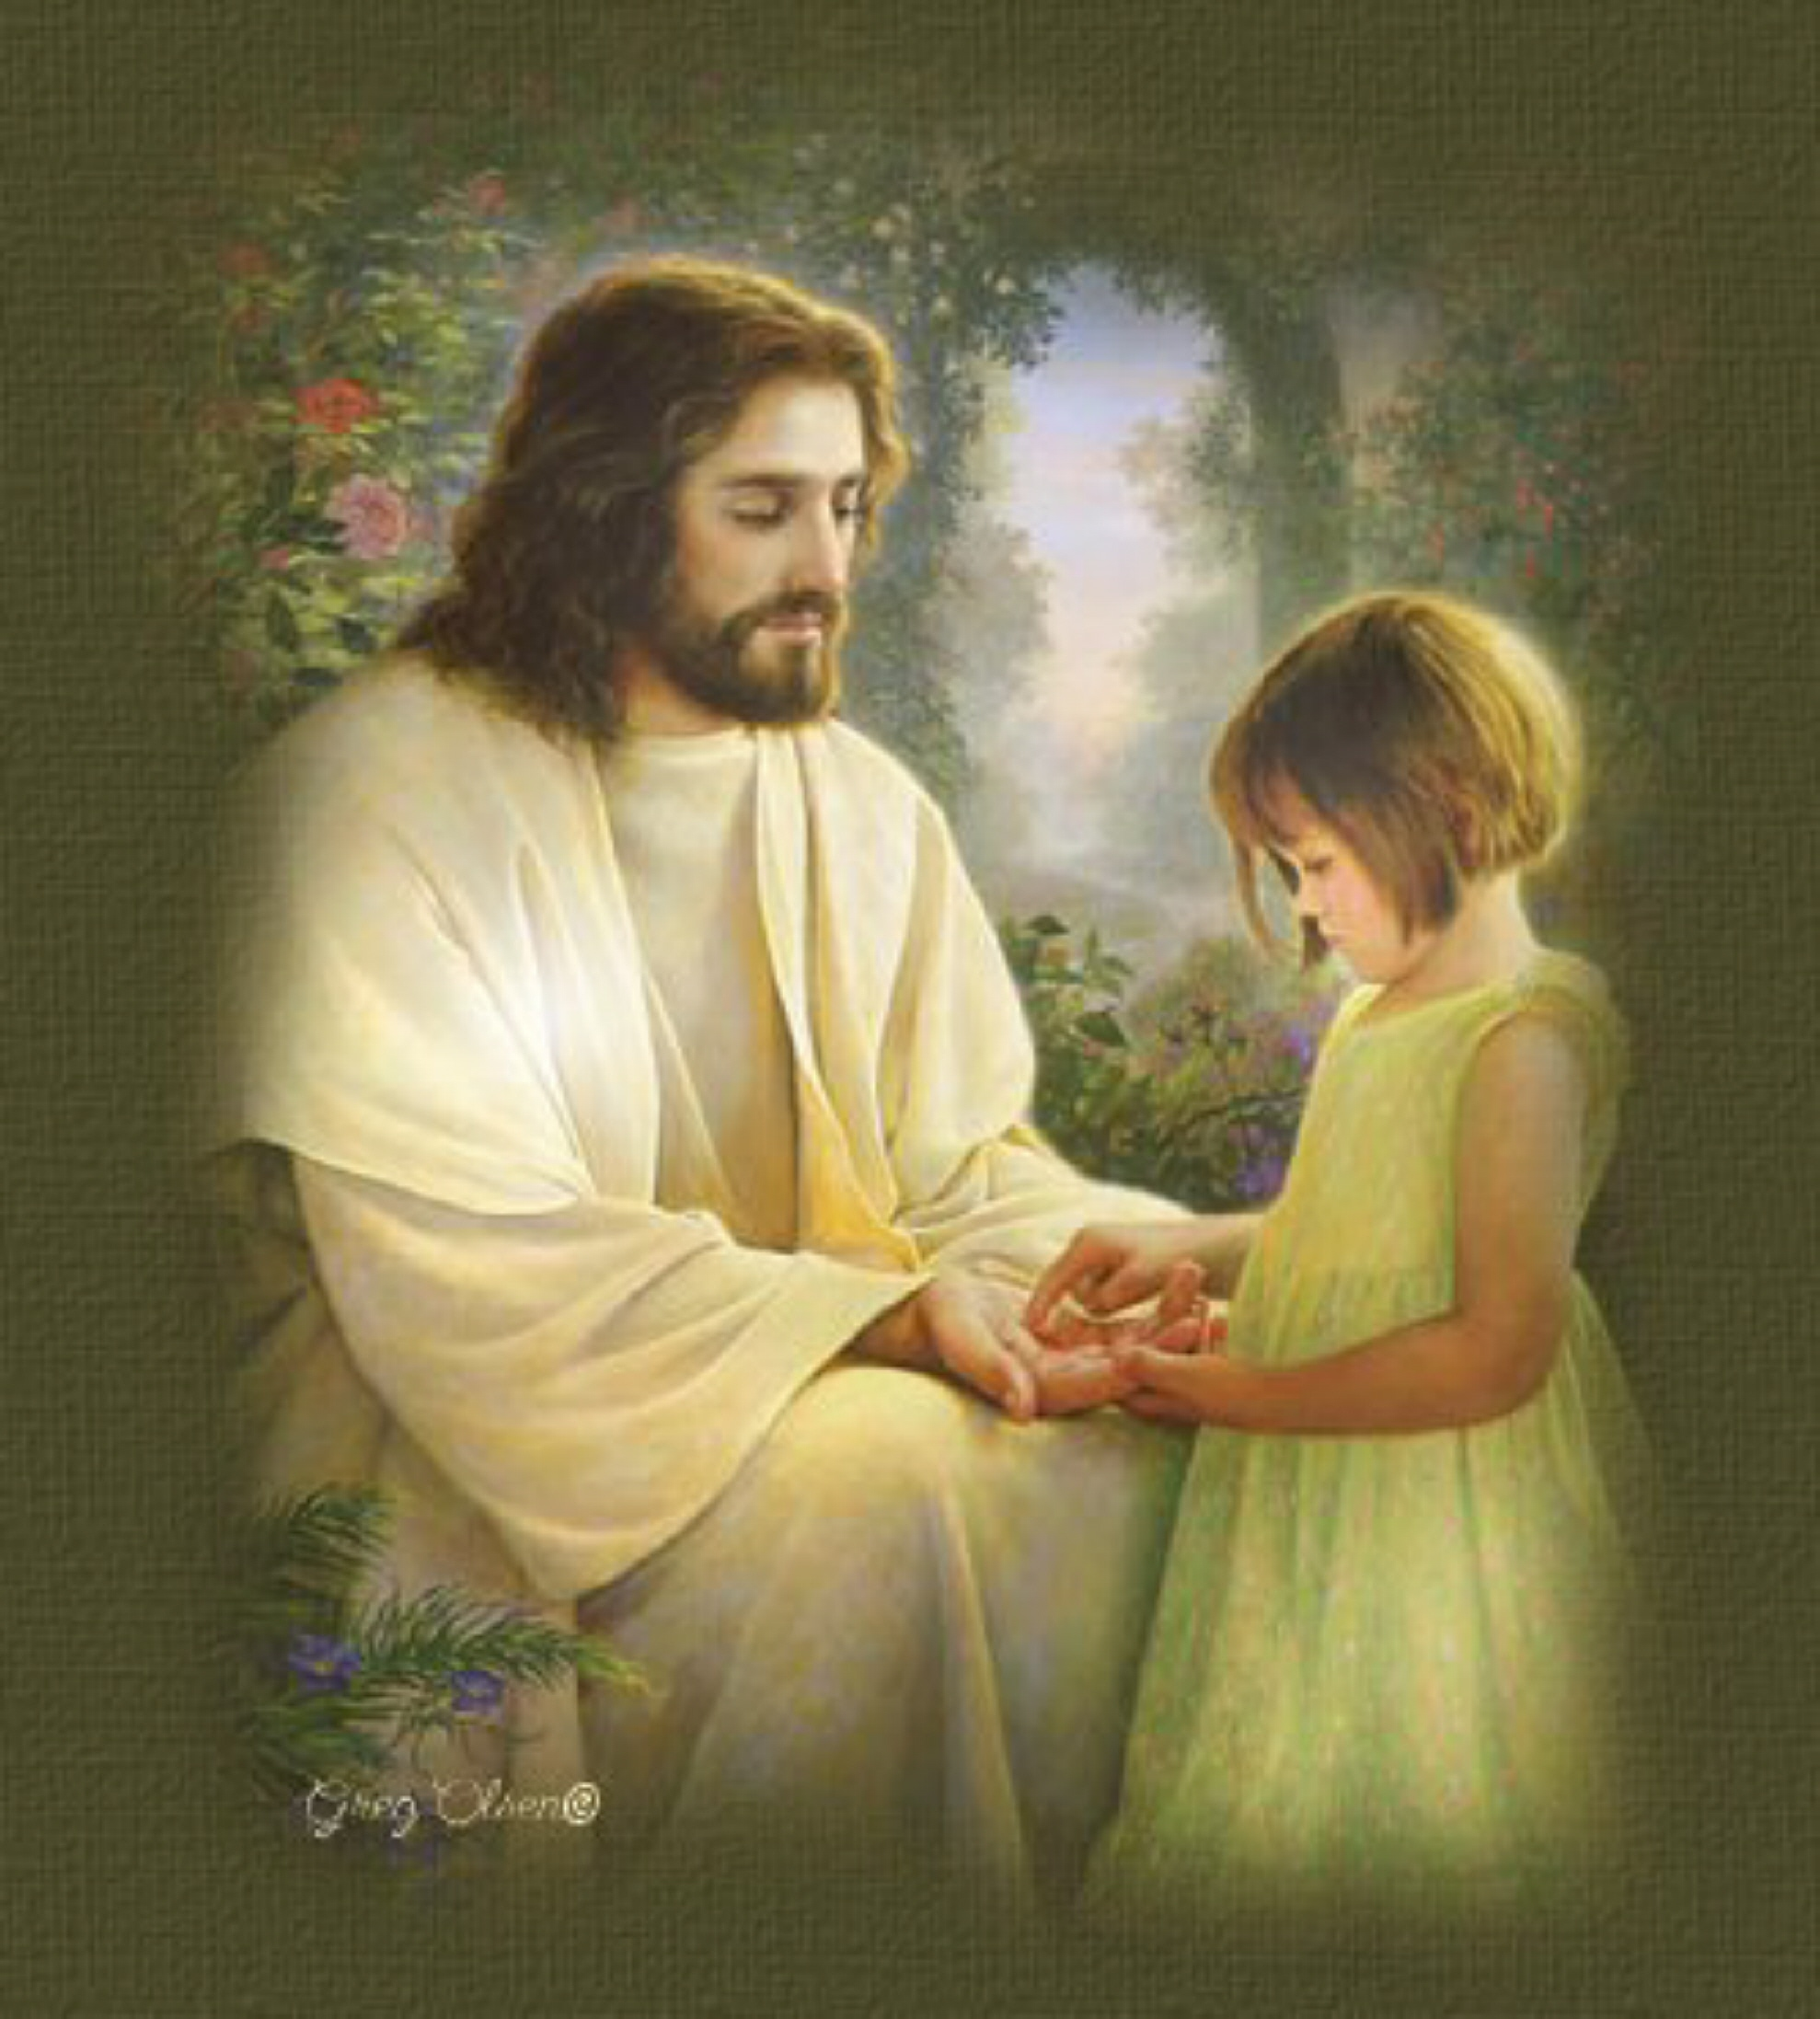 Jesus-And-Child-jesus-24398969-1978-2194.jpg